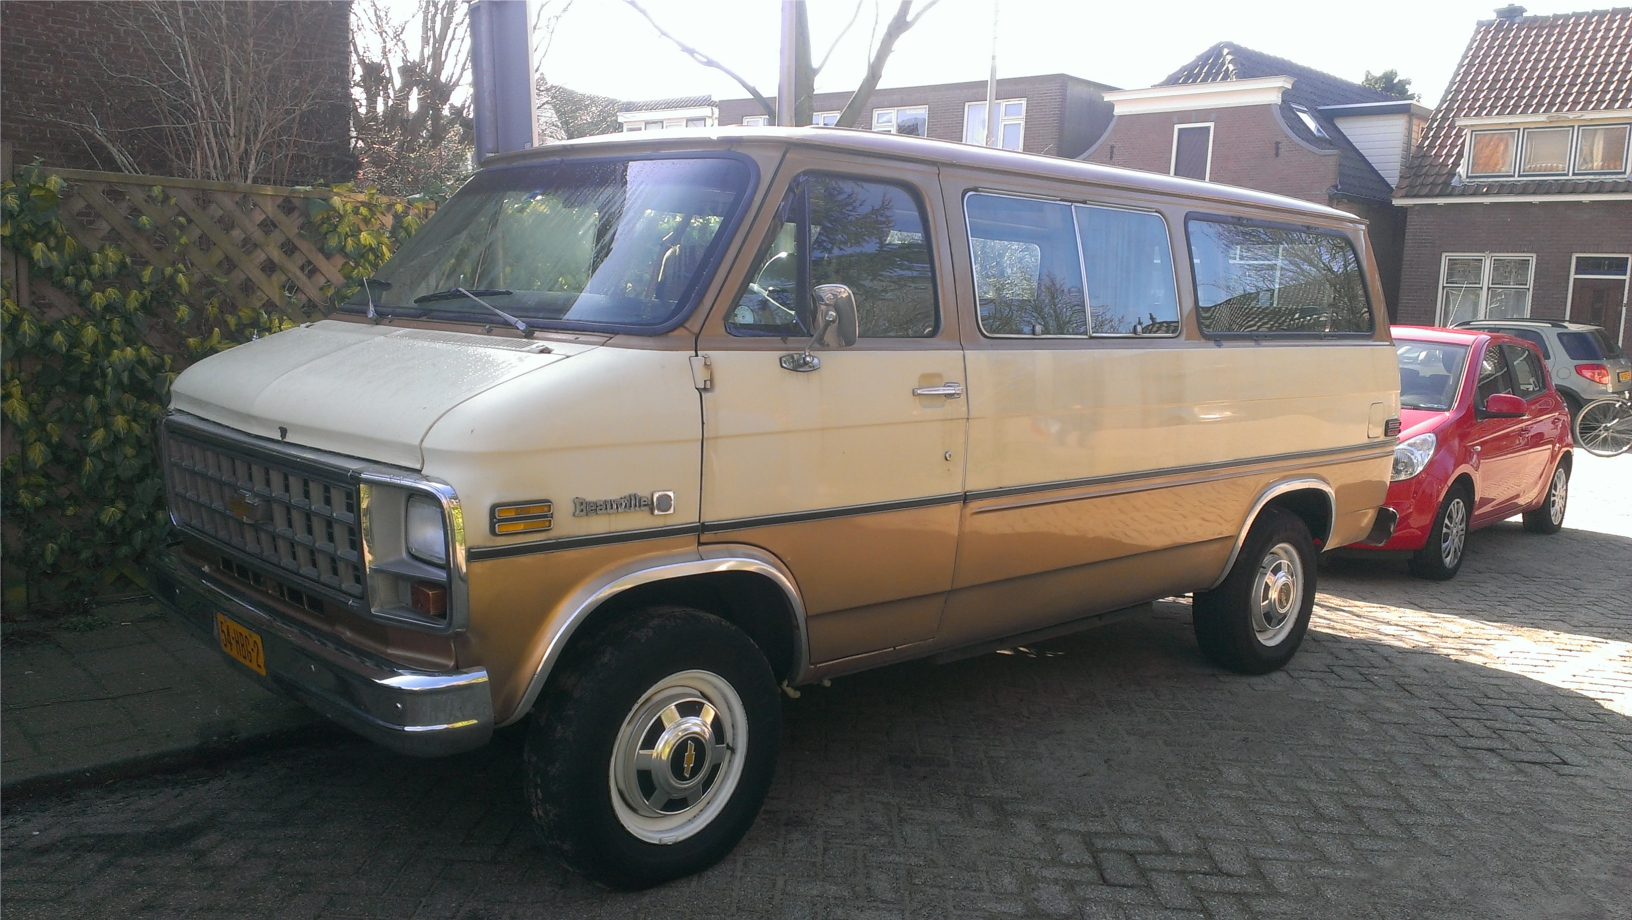 All Chevy 1978 chevy van for sale : Chevrolet Van - Wikiwand